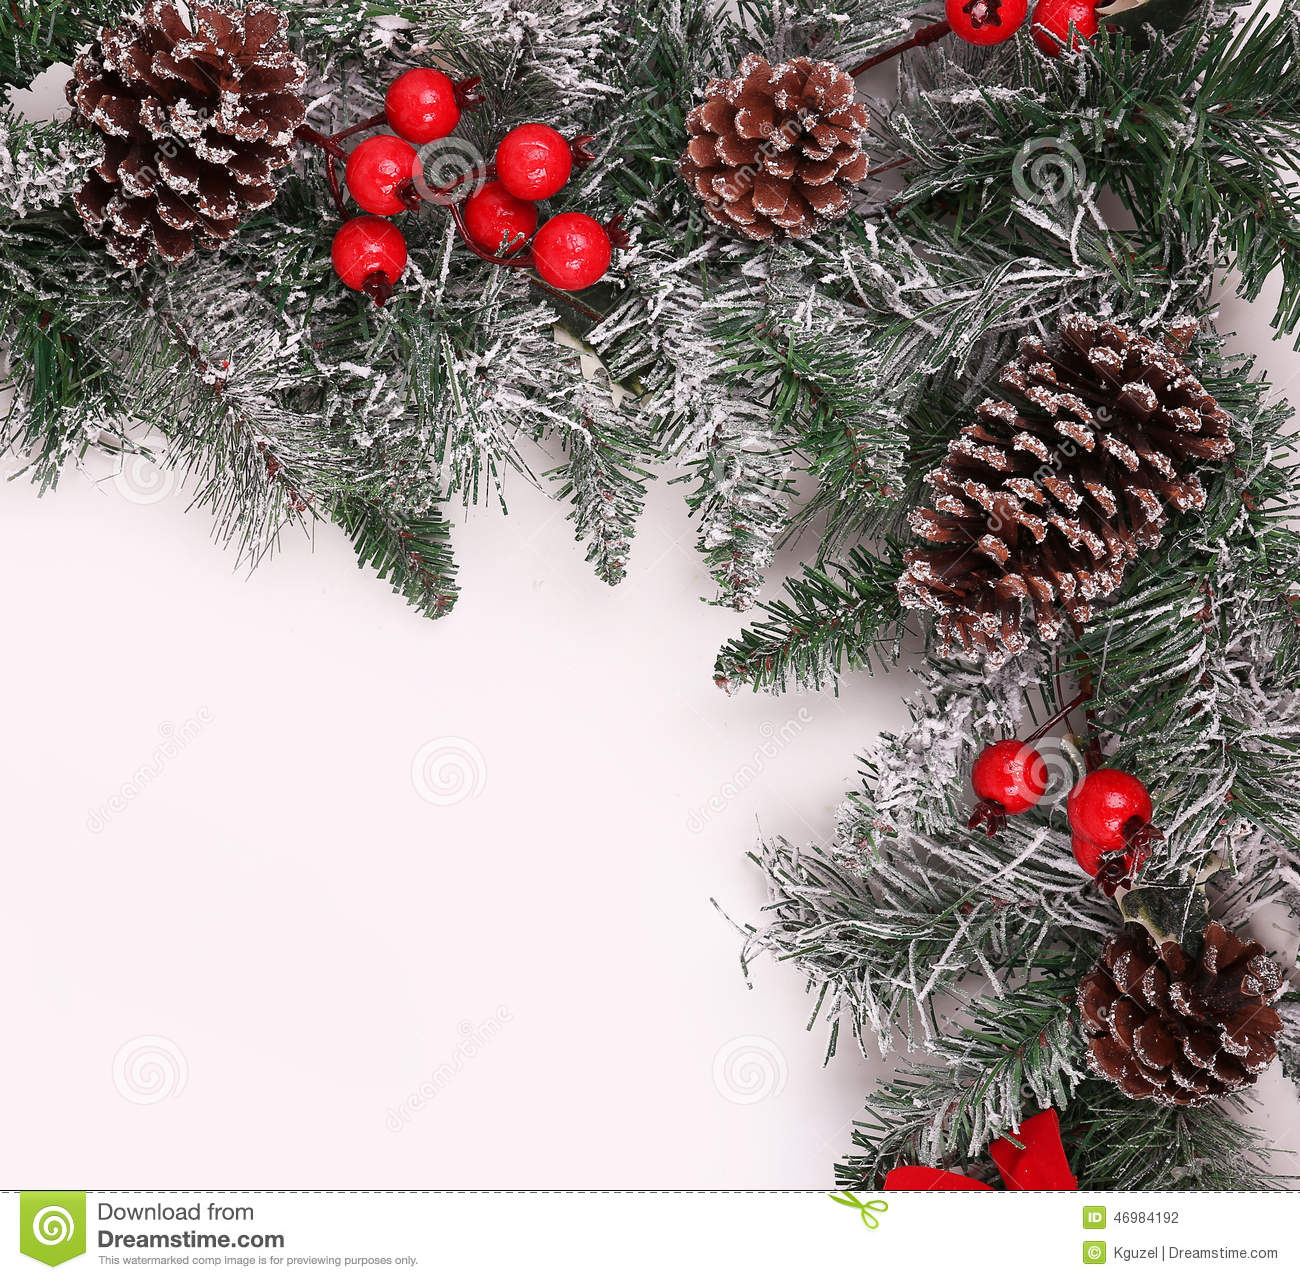 Christmas Tree With Pine Cones And Berries: Christmas Background. Branch Of Christmas Tree With Pine